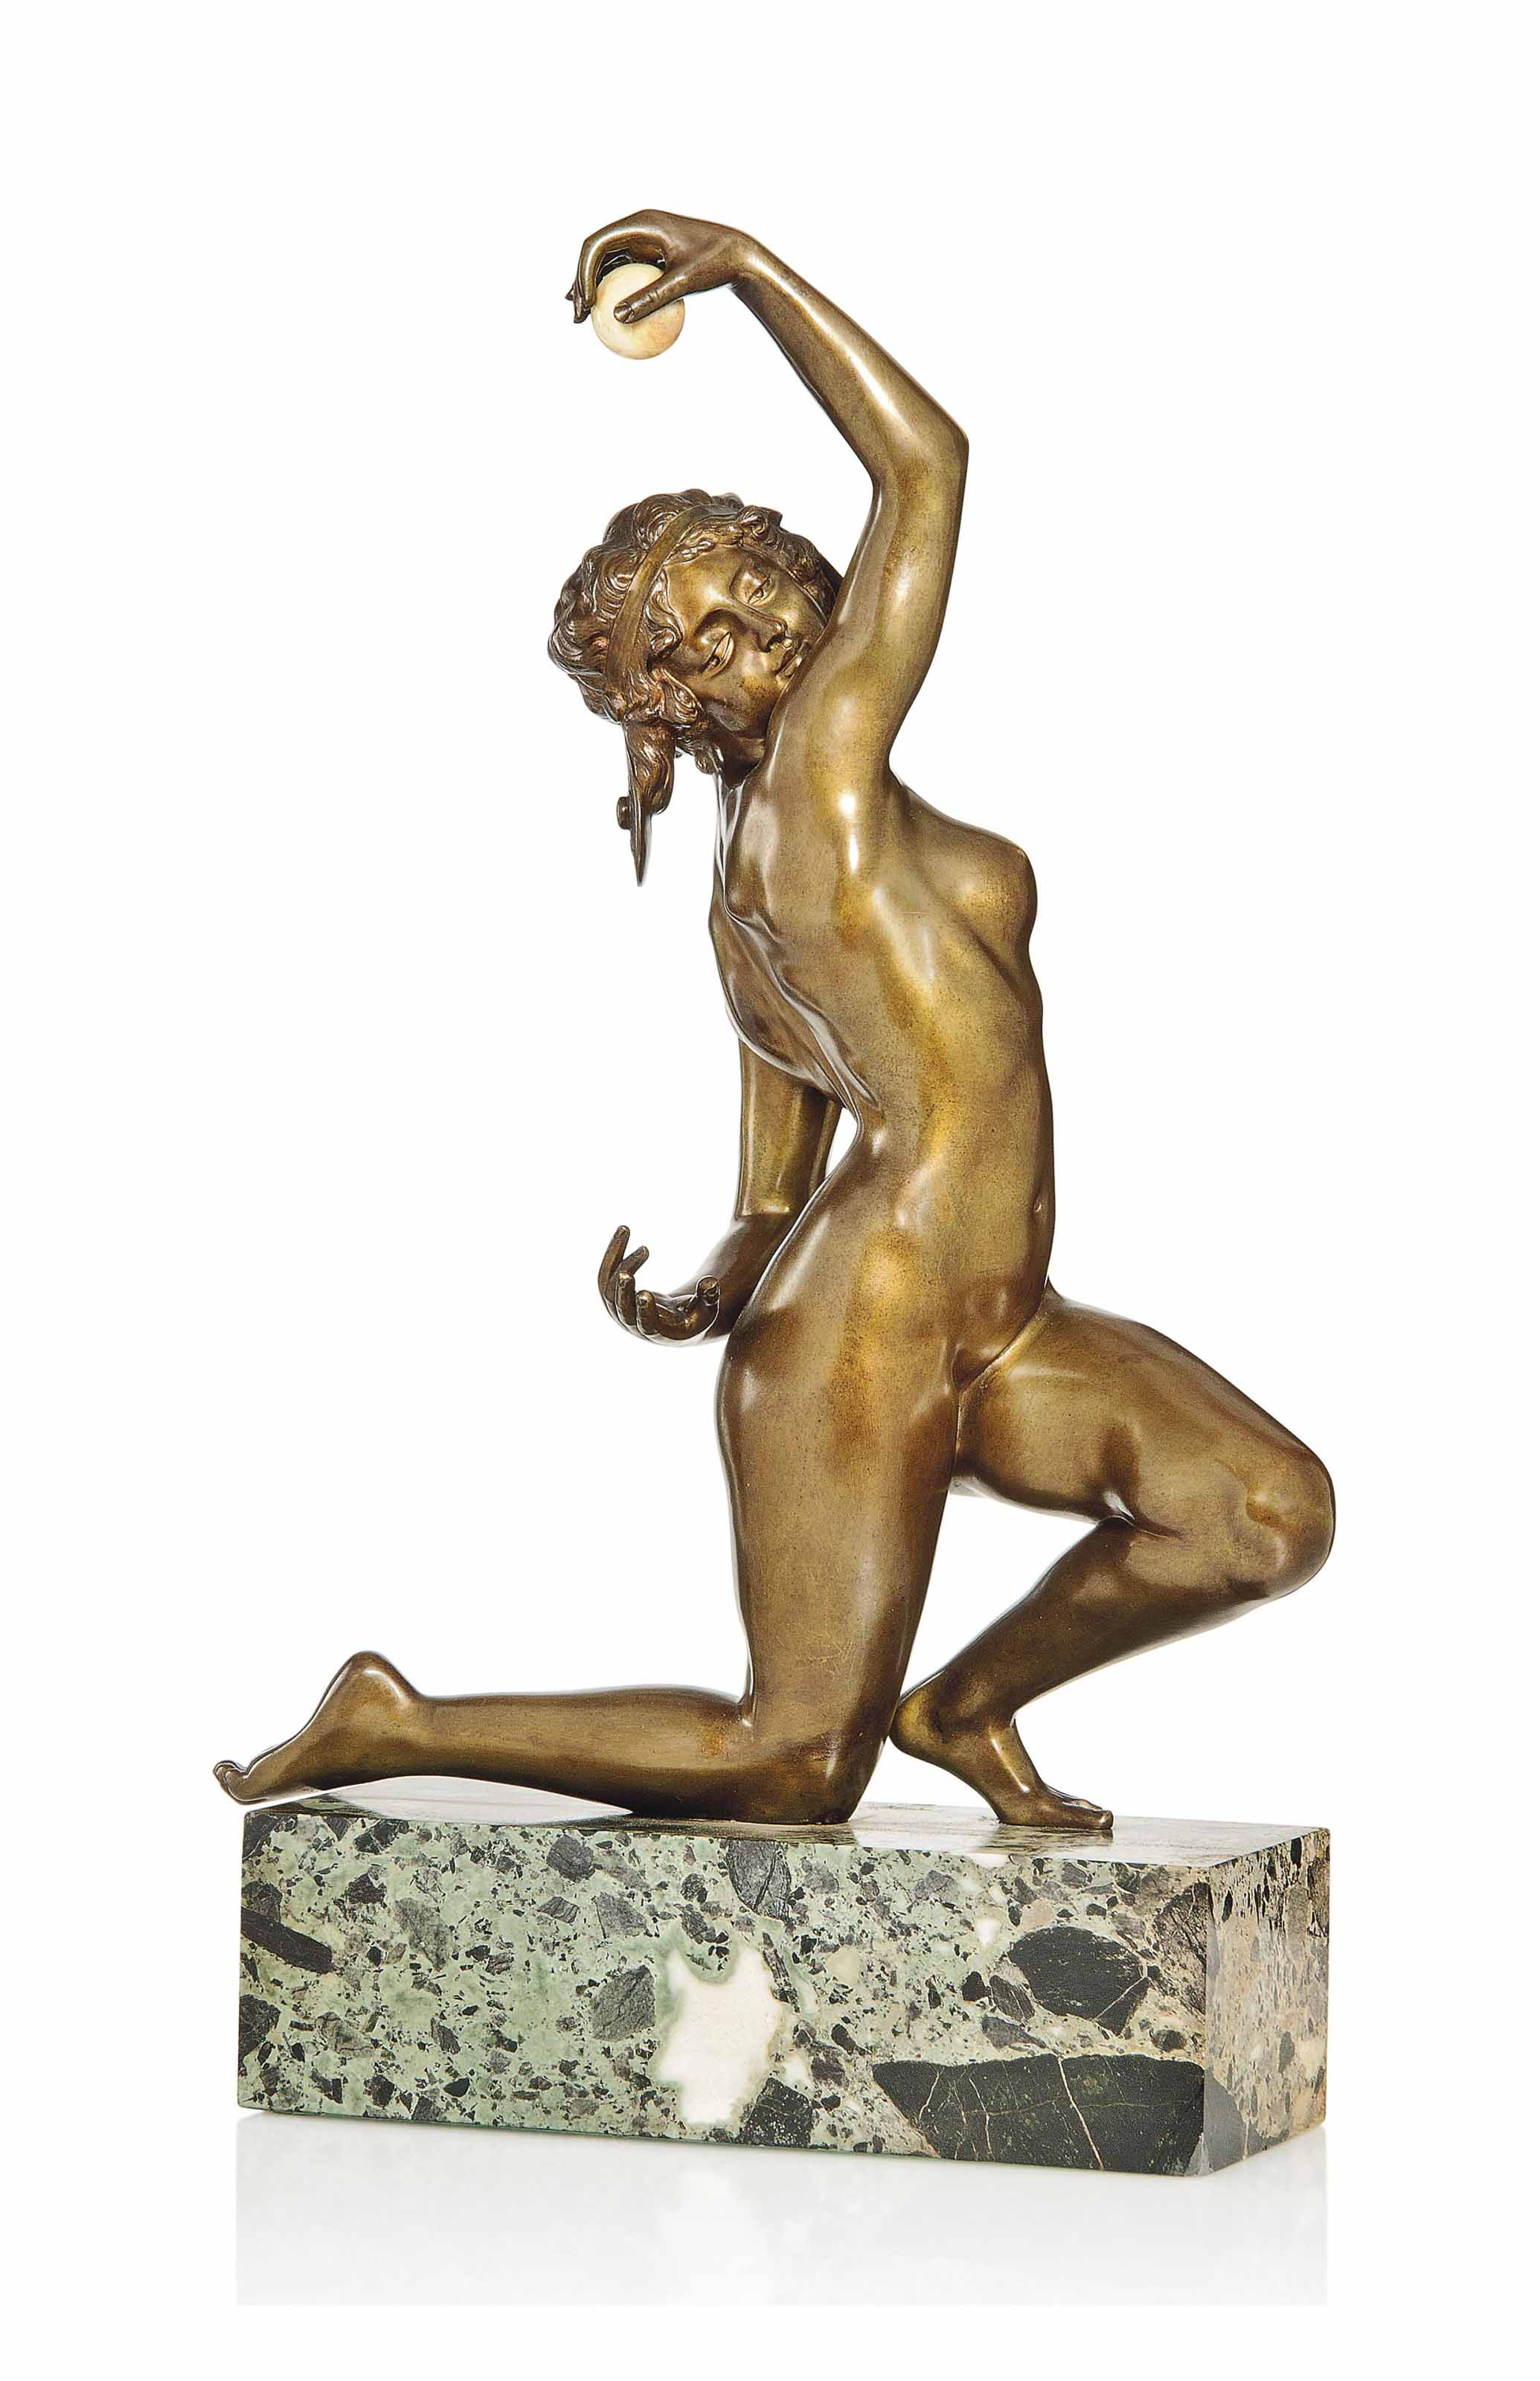 A LARGE AFFORTUNATO GORY PATINATED BRONZE AND IVORY FIGURE